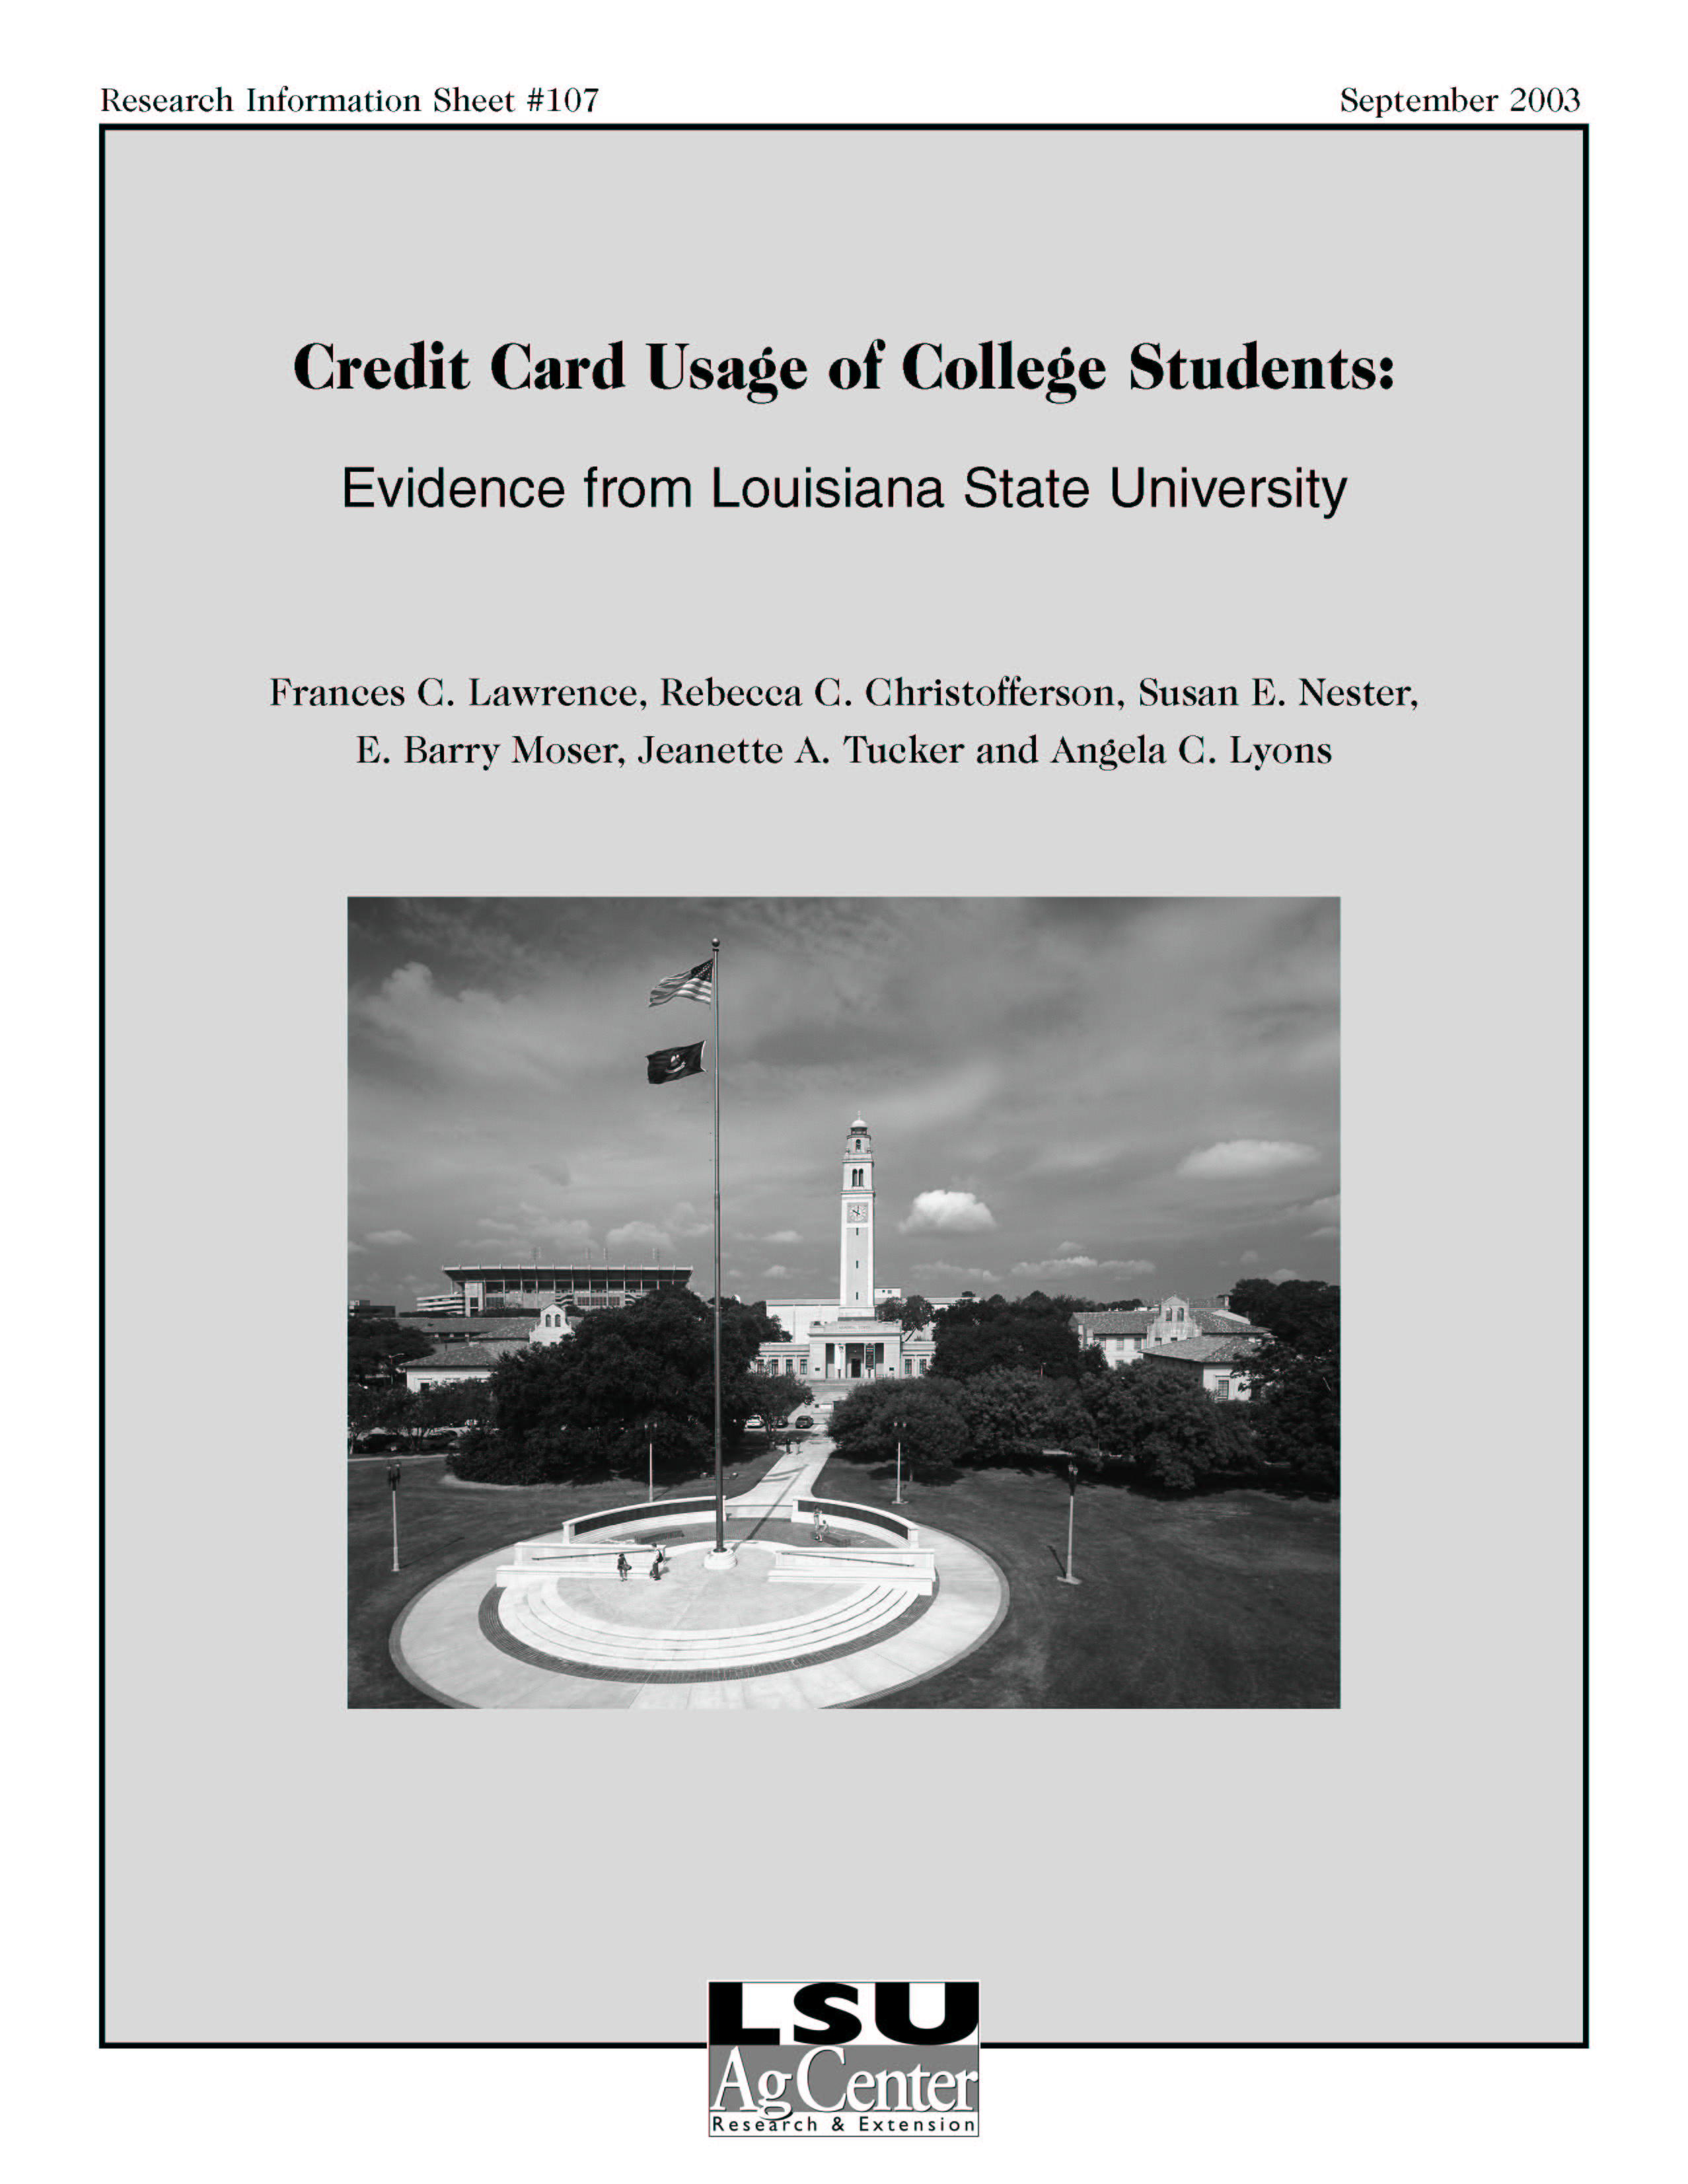 Credit Card Usage of College Students: Evidence from Louisiana State University (September 2003)